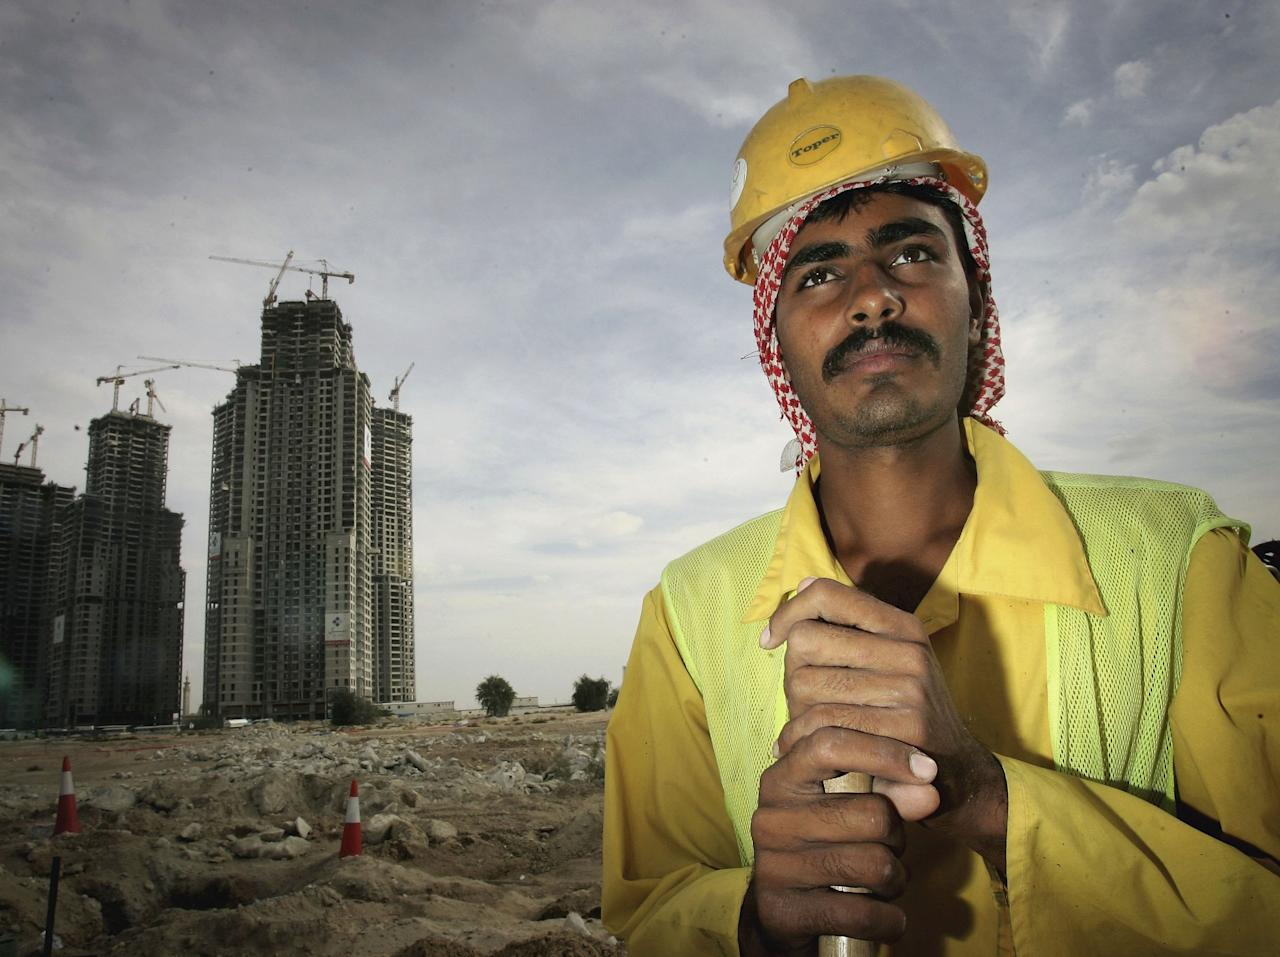 DUBAI, UNITED ARAB EMIRATES - DECEMBER 05:  A expatriate construction worker from Pakistan leans on his shovel on a building site in Dubai on December 5, 2006 in Dubai, United Arab Emirates. Construction in Dubai is on a massive scale and an estimated 20 percent of the world's cranes fill the skyline as the city establishes itself as one of the great tourist destinations of the world. Pakistani and Indian expatriate workers are employed by the construction companies and they send money back to their families at home.  (Photo by Chris Jackson/Getty Images)